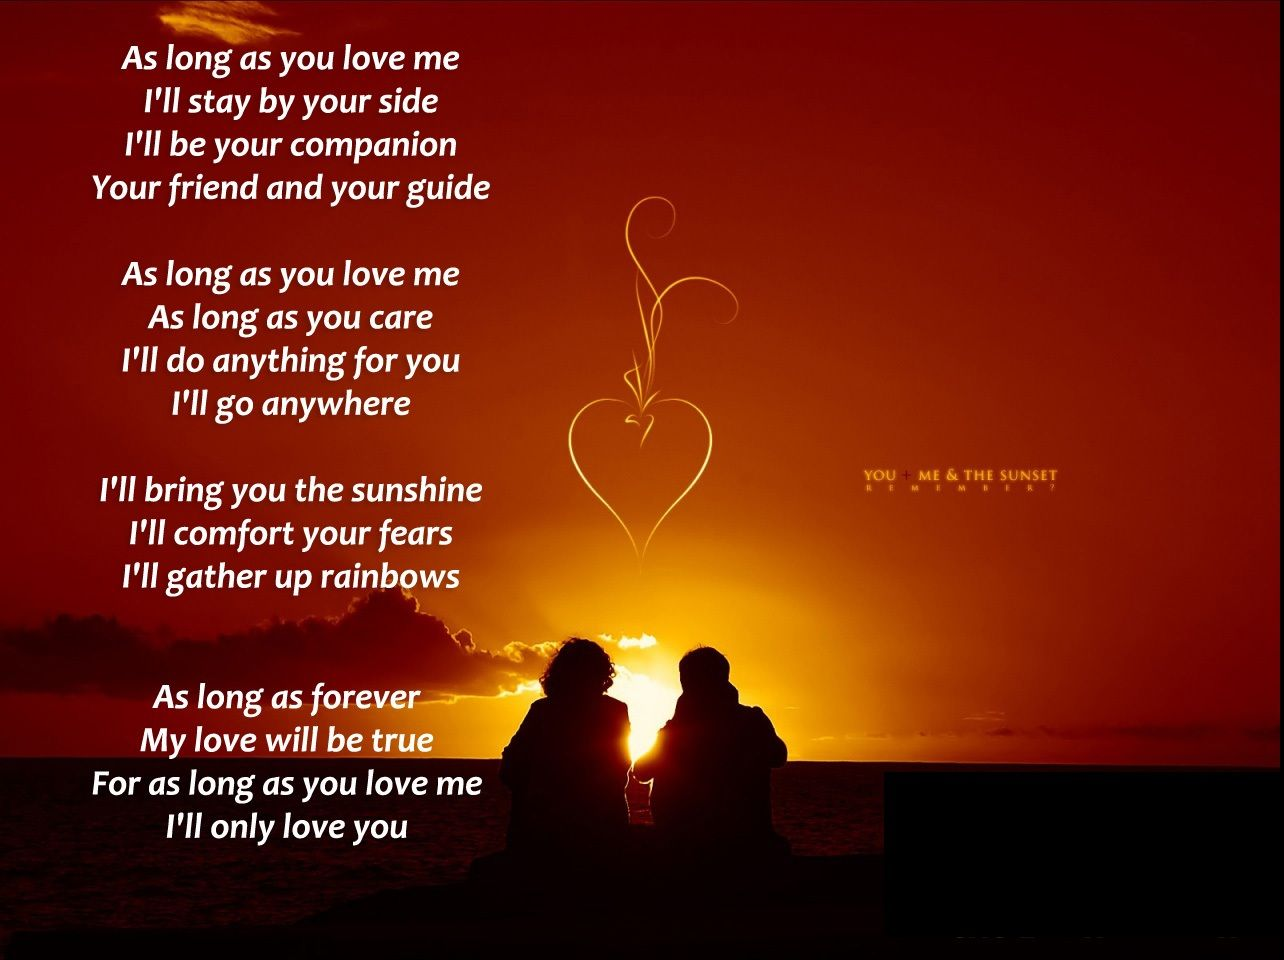 hd love poetry backgrounds